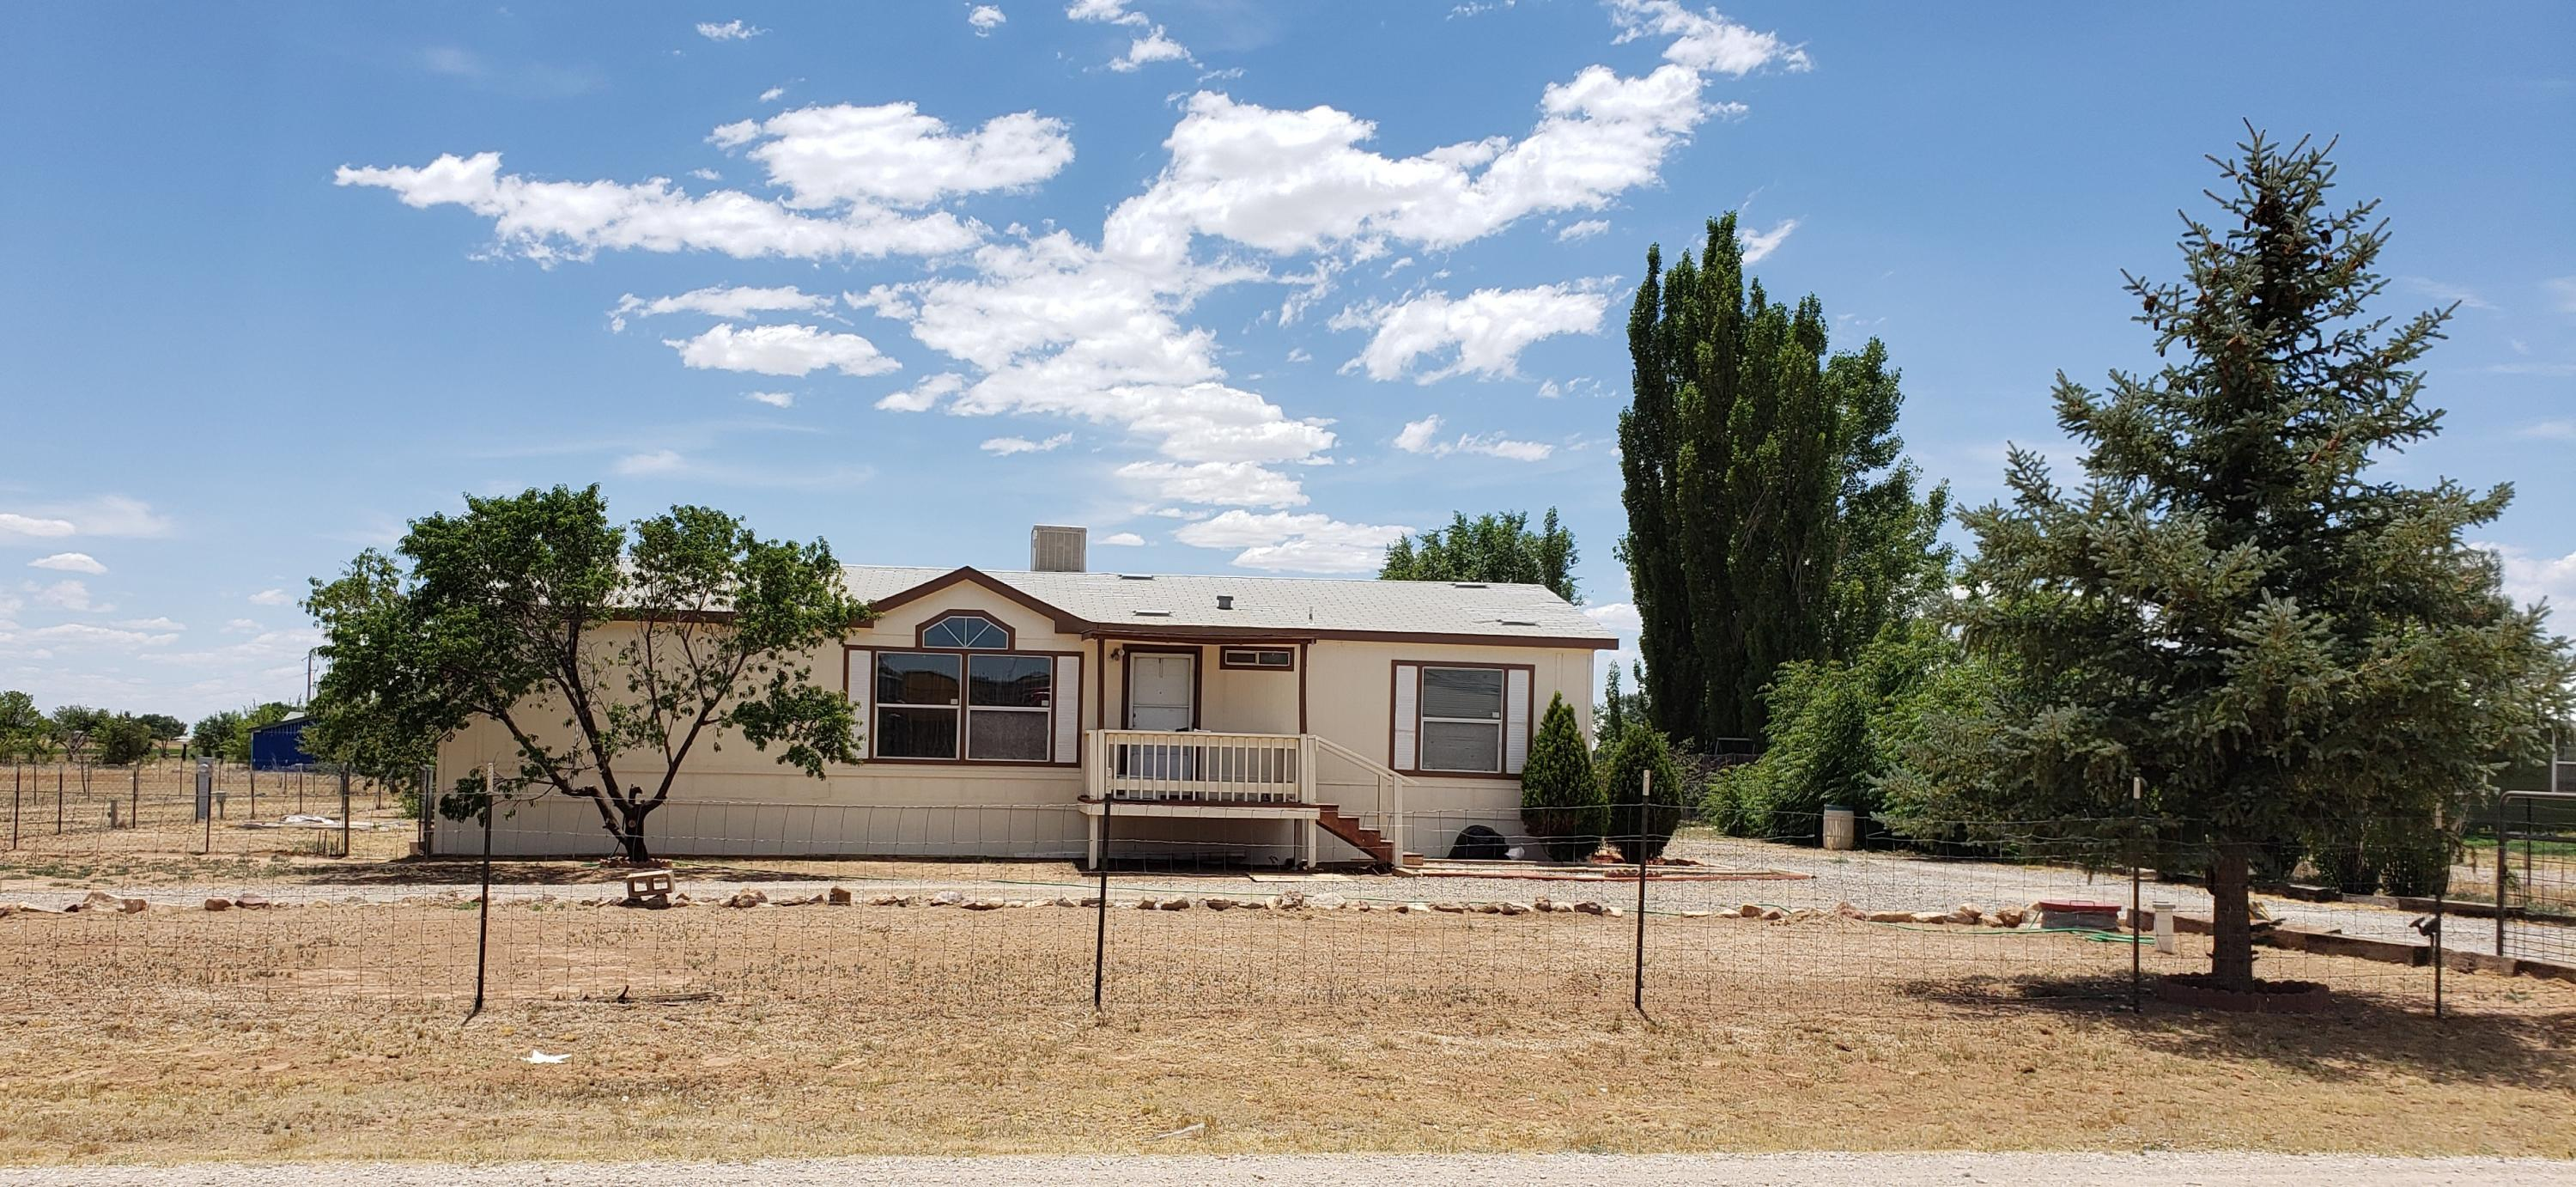 Super convenient, easy access to freeway and restaurants! Well maintained home, with new carpet, and new septic! Large his & hers closet in master with a large master bath featuring garden tub and his & her sinks! Easy access for RV with 2 gates!! This one won't last....